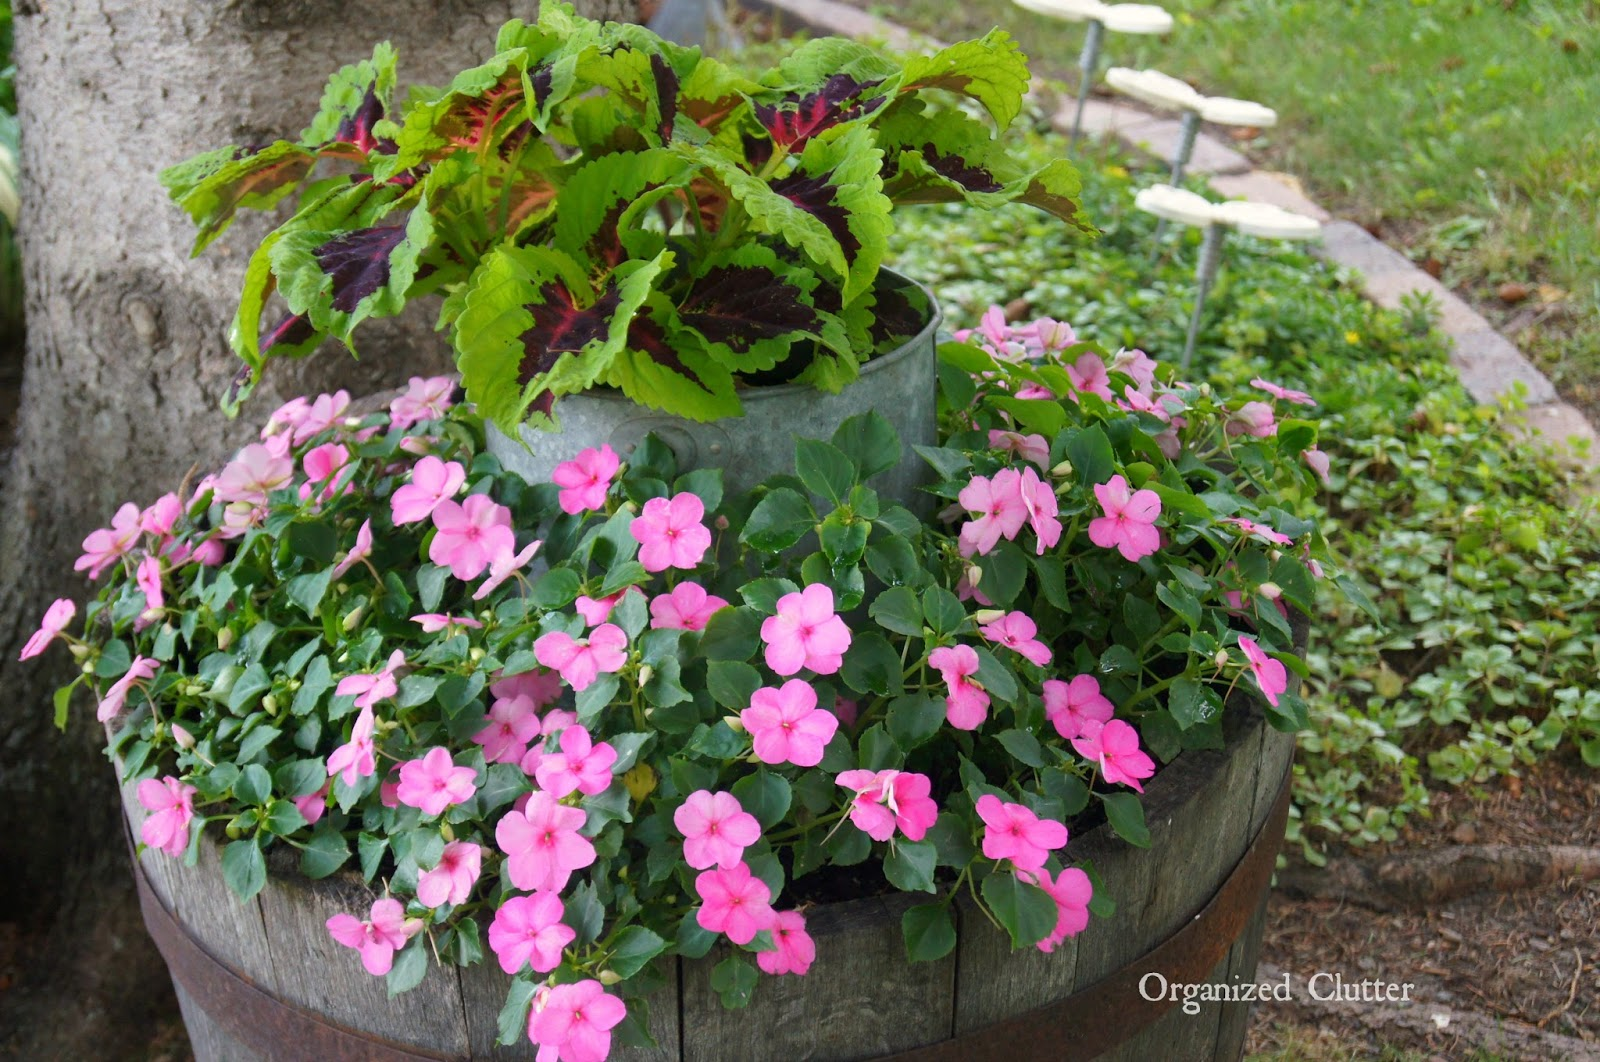 Coleus and Impatiens Under a Tree www.organizedclutterqueen.blogspot.com